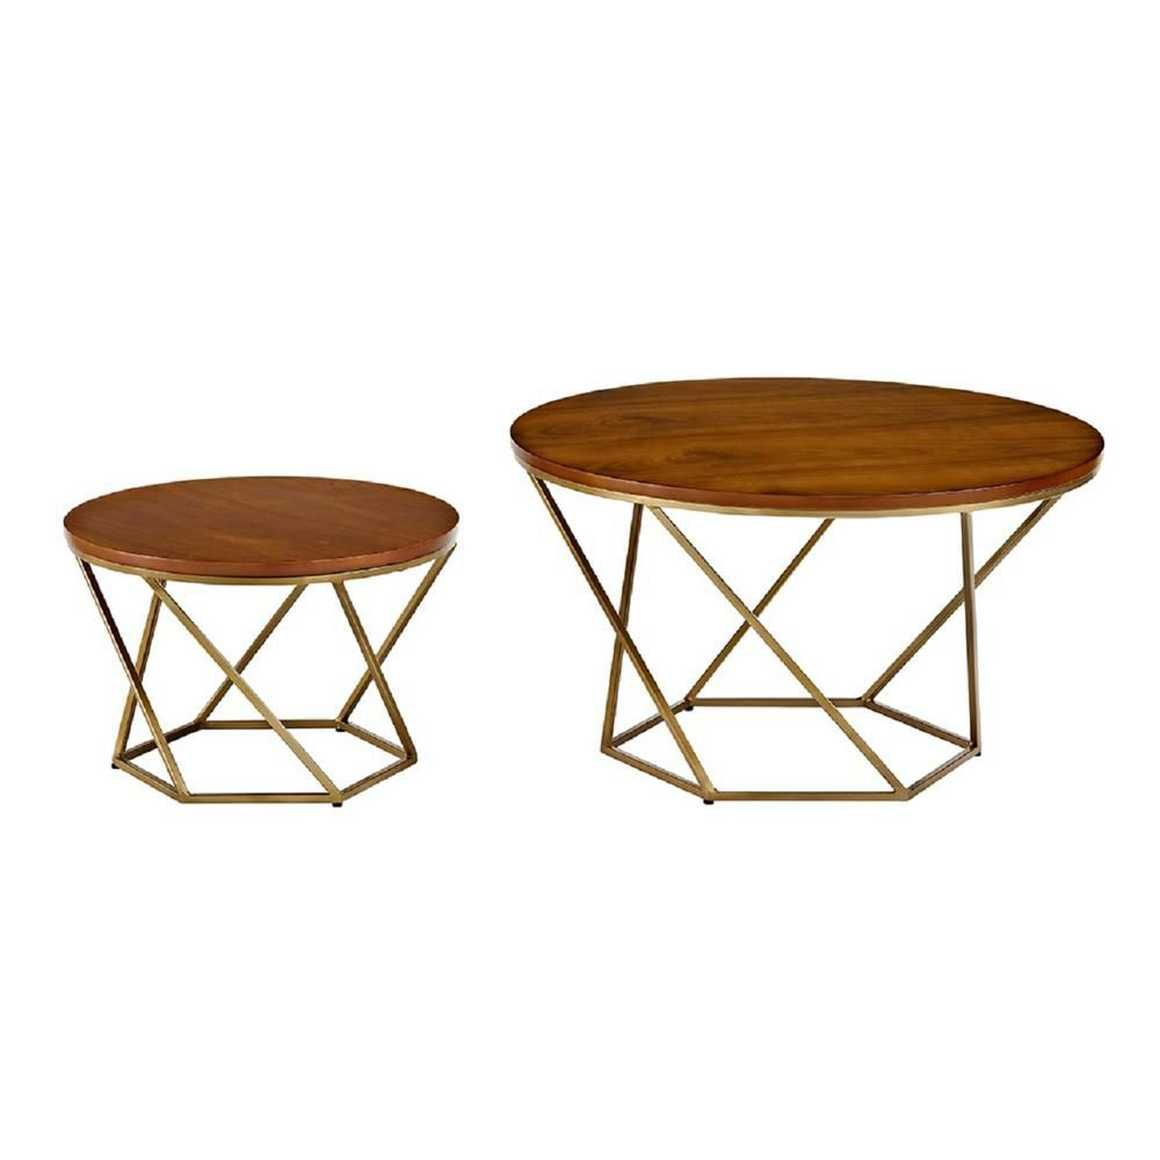 Geometric Wood Nesting Coffee Tables In Walnut And Gold By